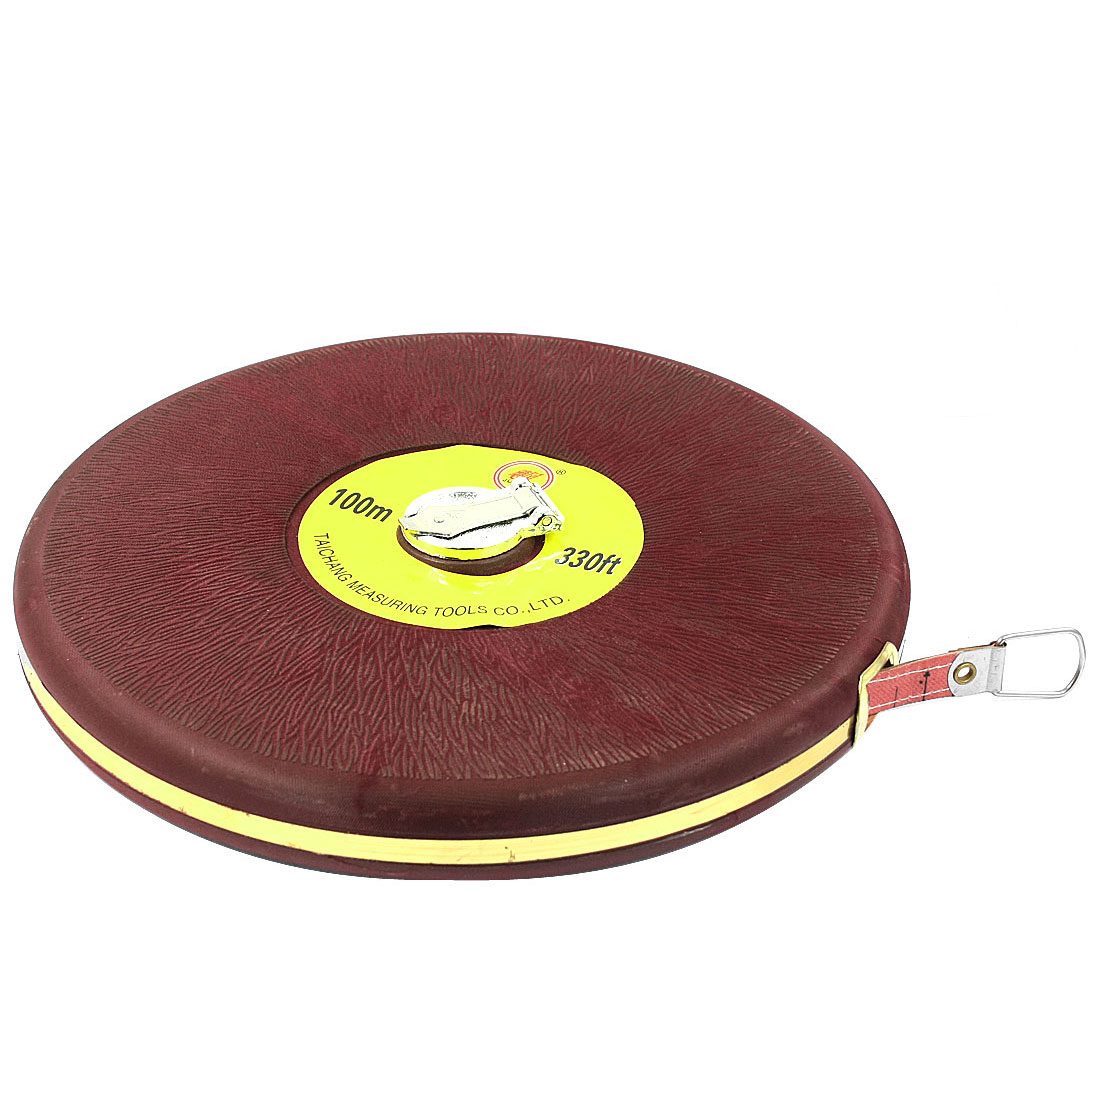 Engineer Burgundy Round Shaped 100M Range Reel Measuring Tape